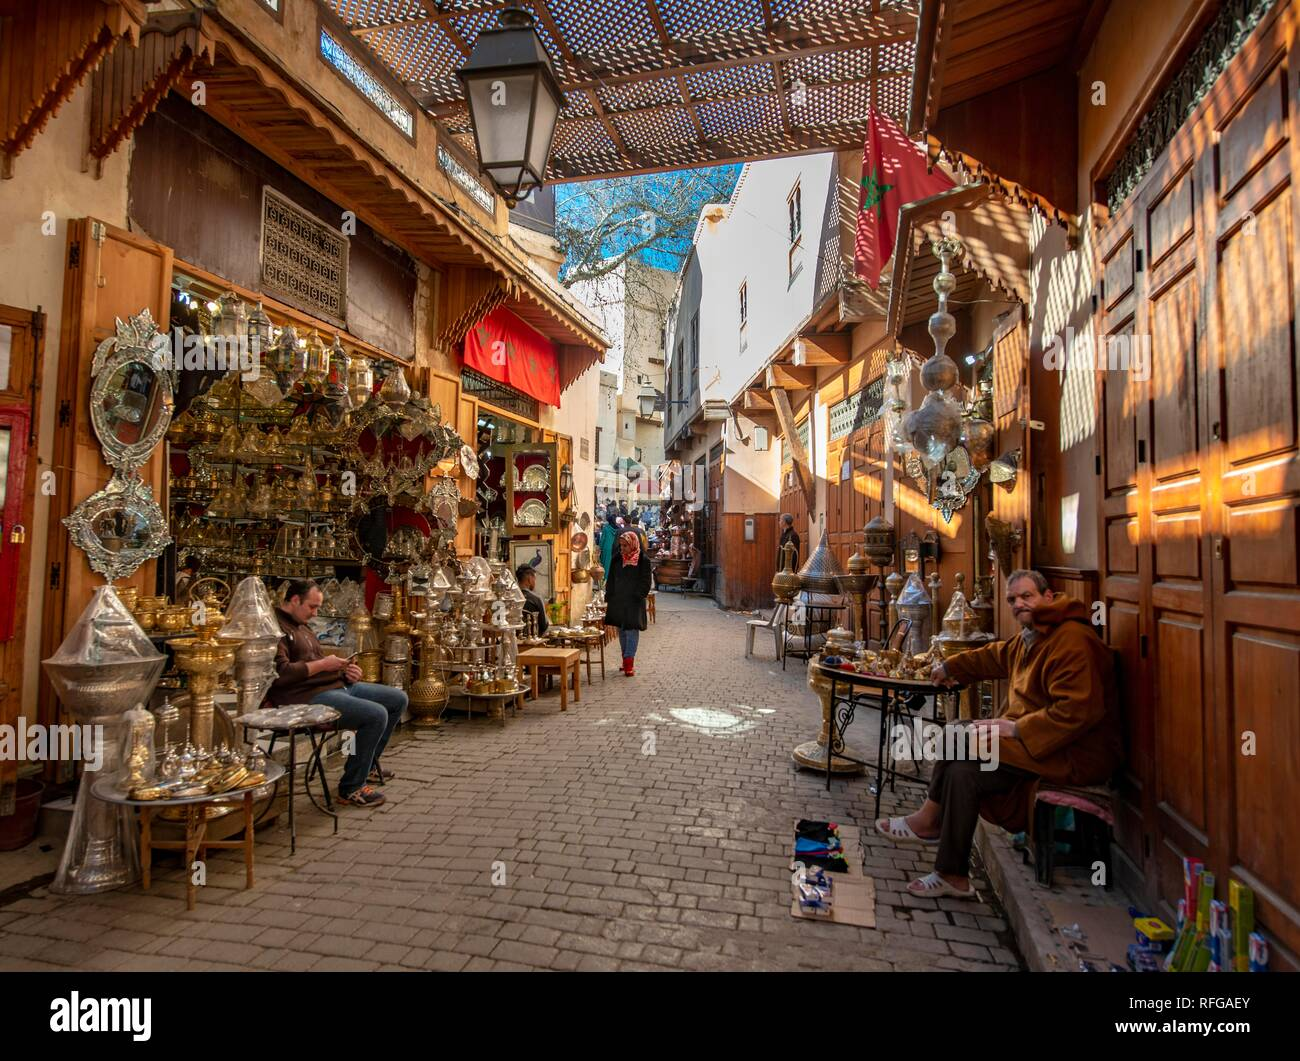 676c983f1cd4d Shop with metal and copper goods, narrow alleyway, Arab market, Shouk, Fez